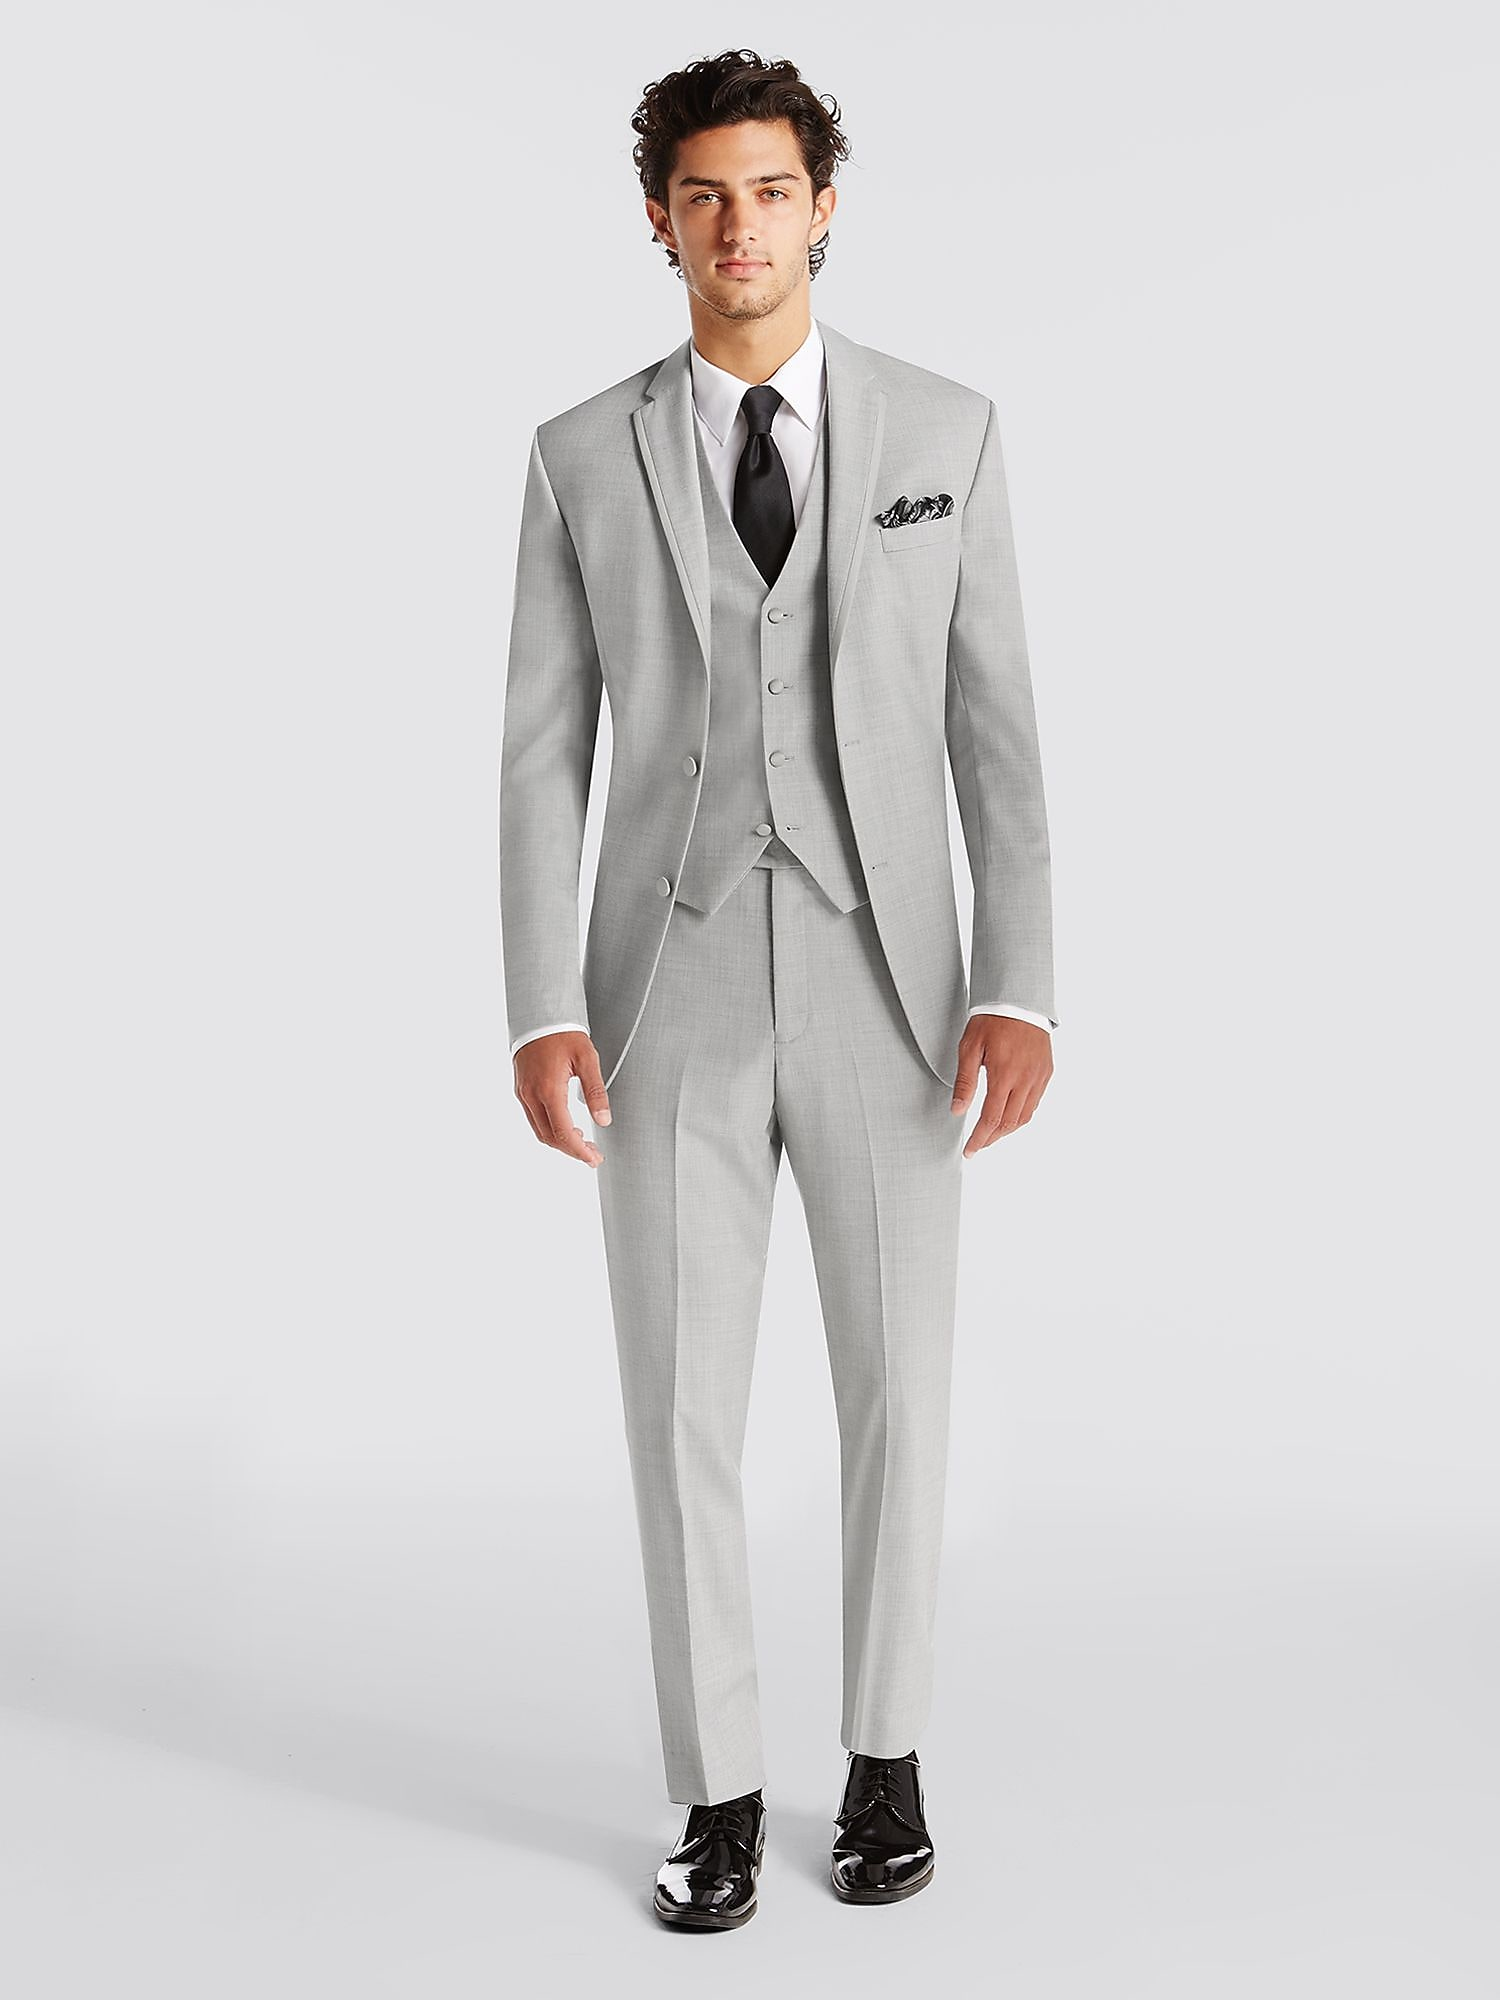 Grey Suit Prom - Go Suits